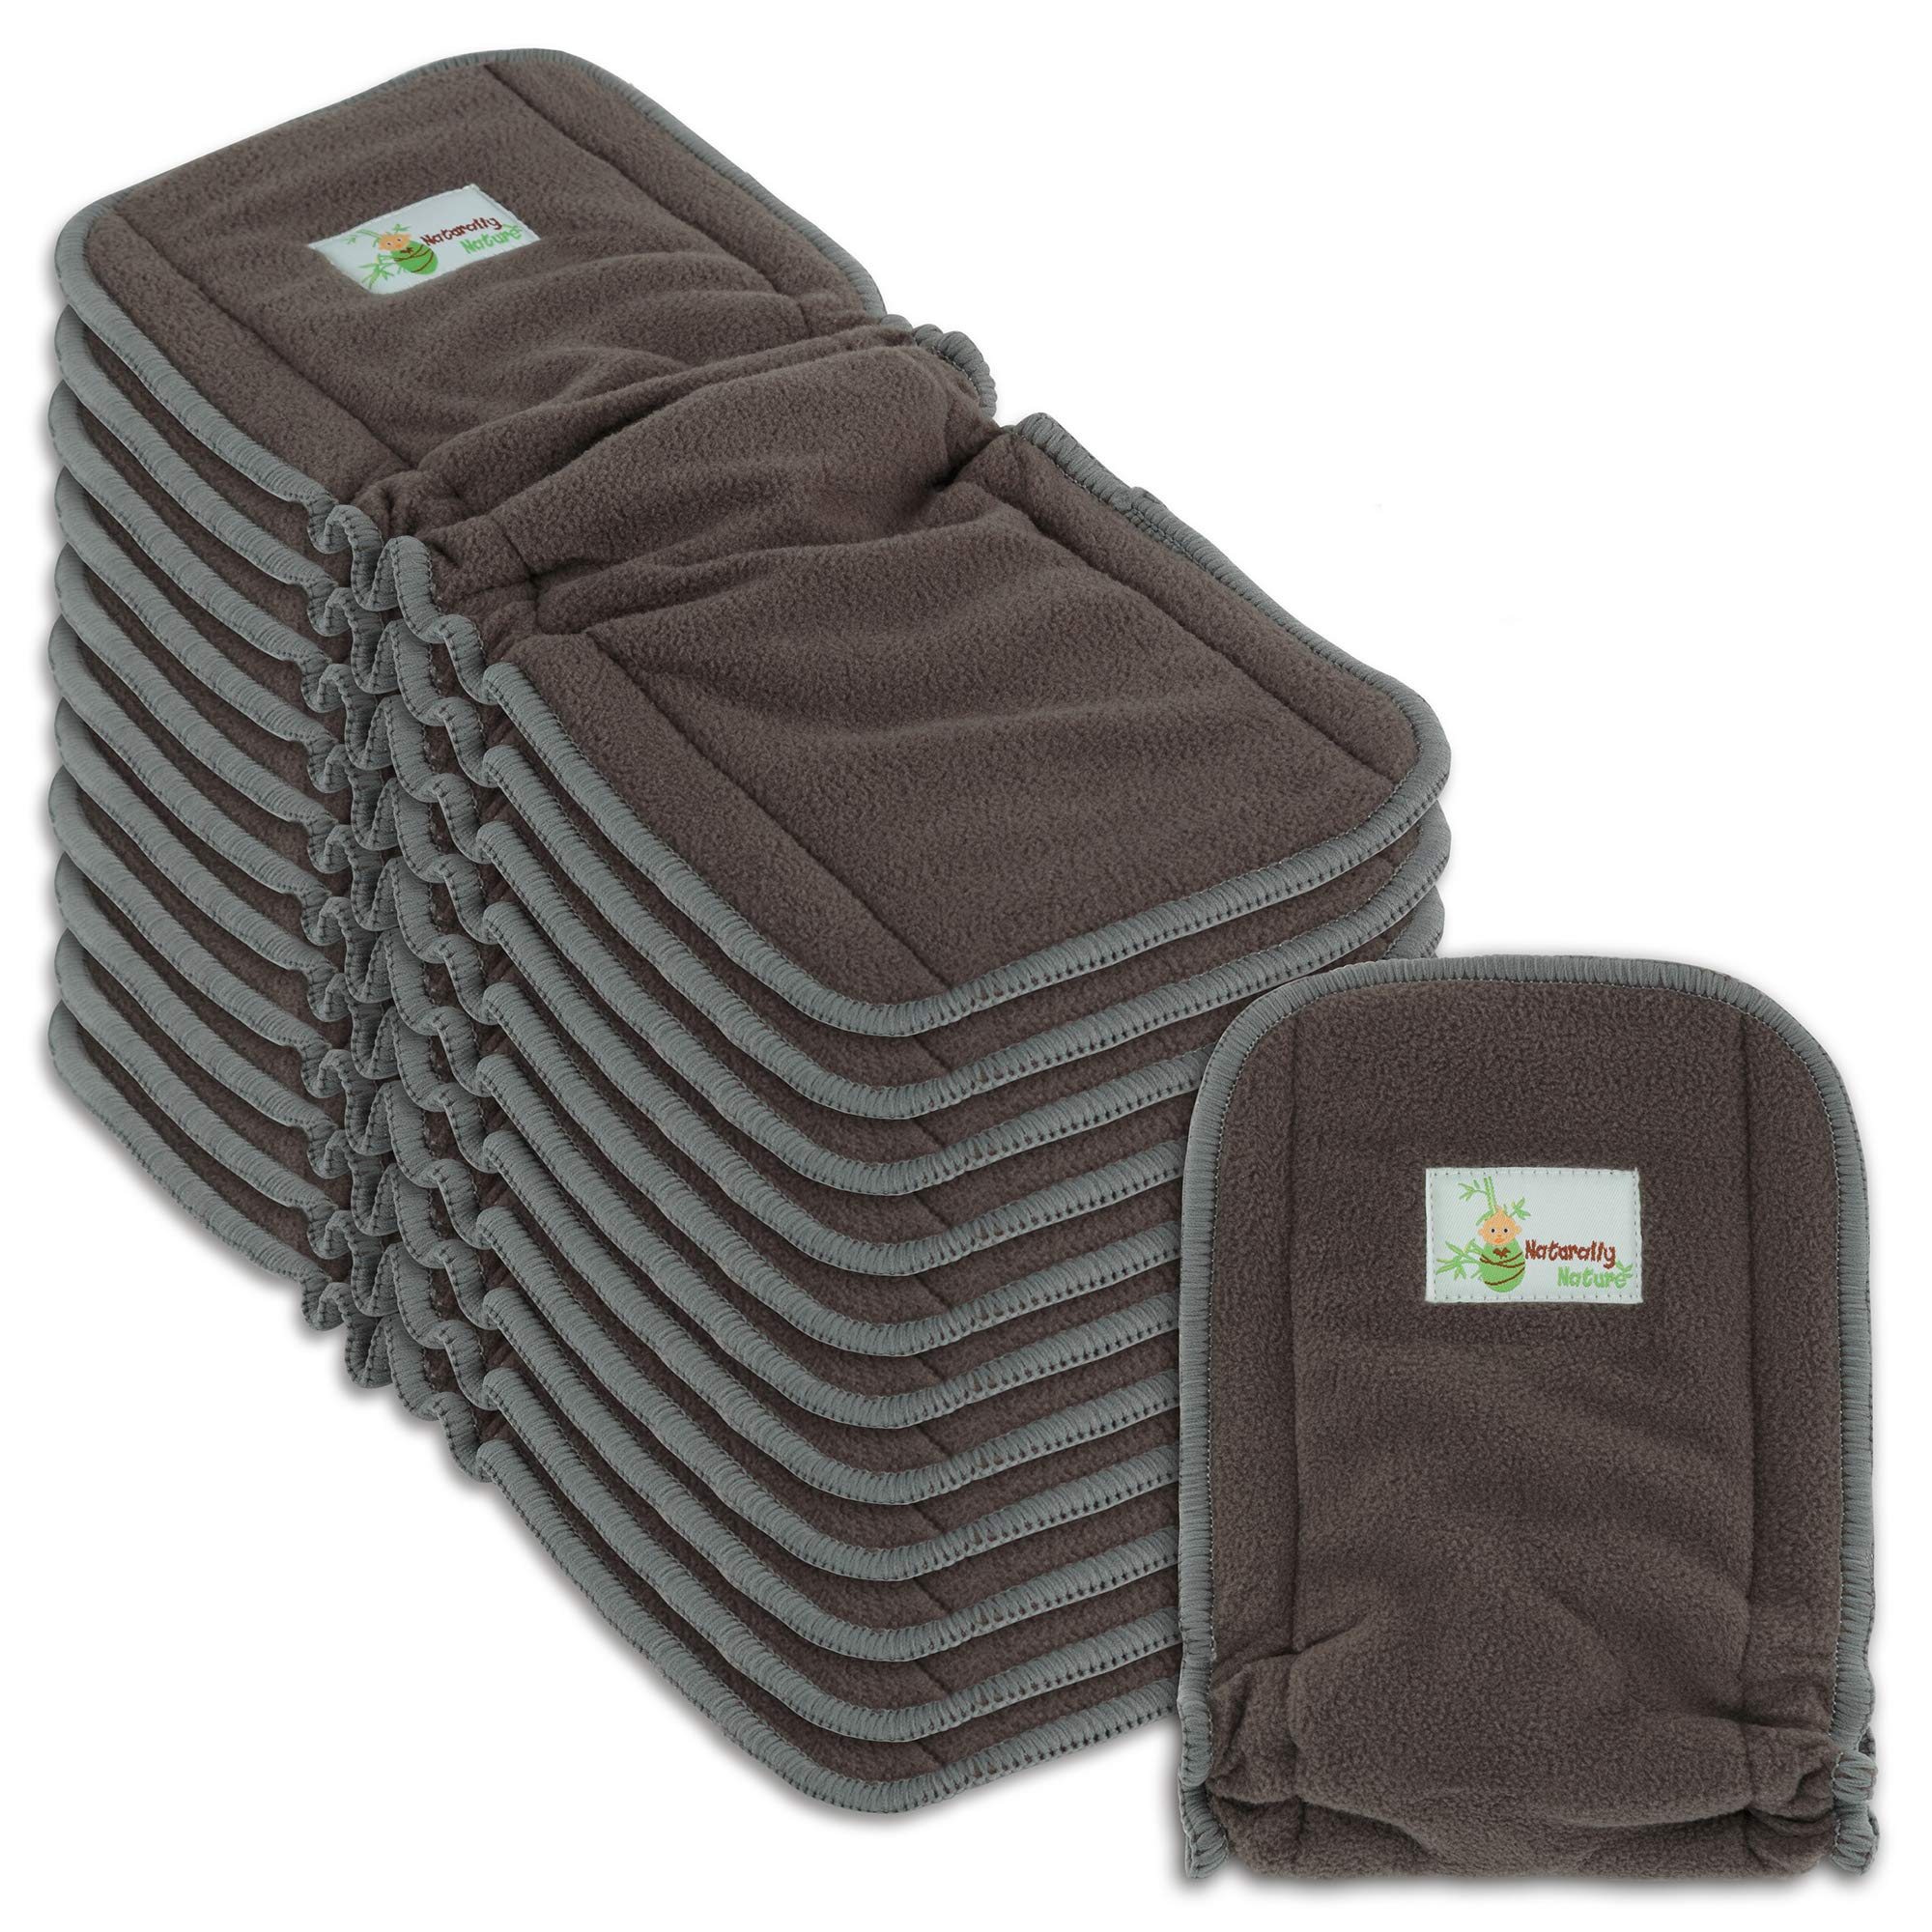 Naturally Natures Cloth Diaper Inserts 5 Layer - Insert - Charcoal Bamboo Reusable Diaper Liners with Gussets (Pack of 12) by Naturally Nature